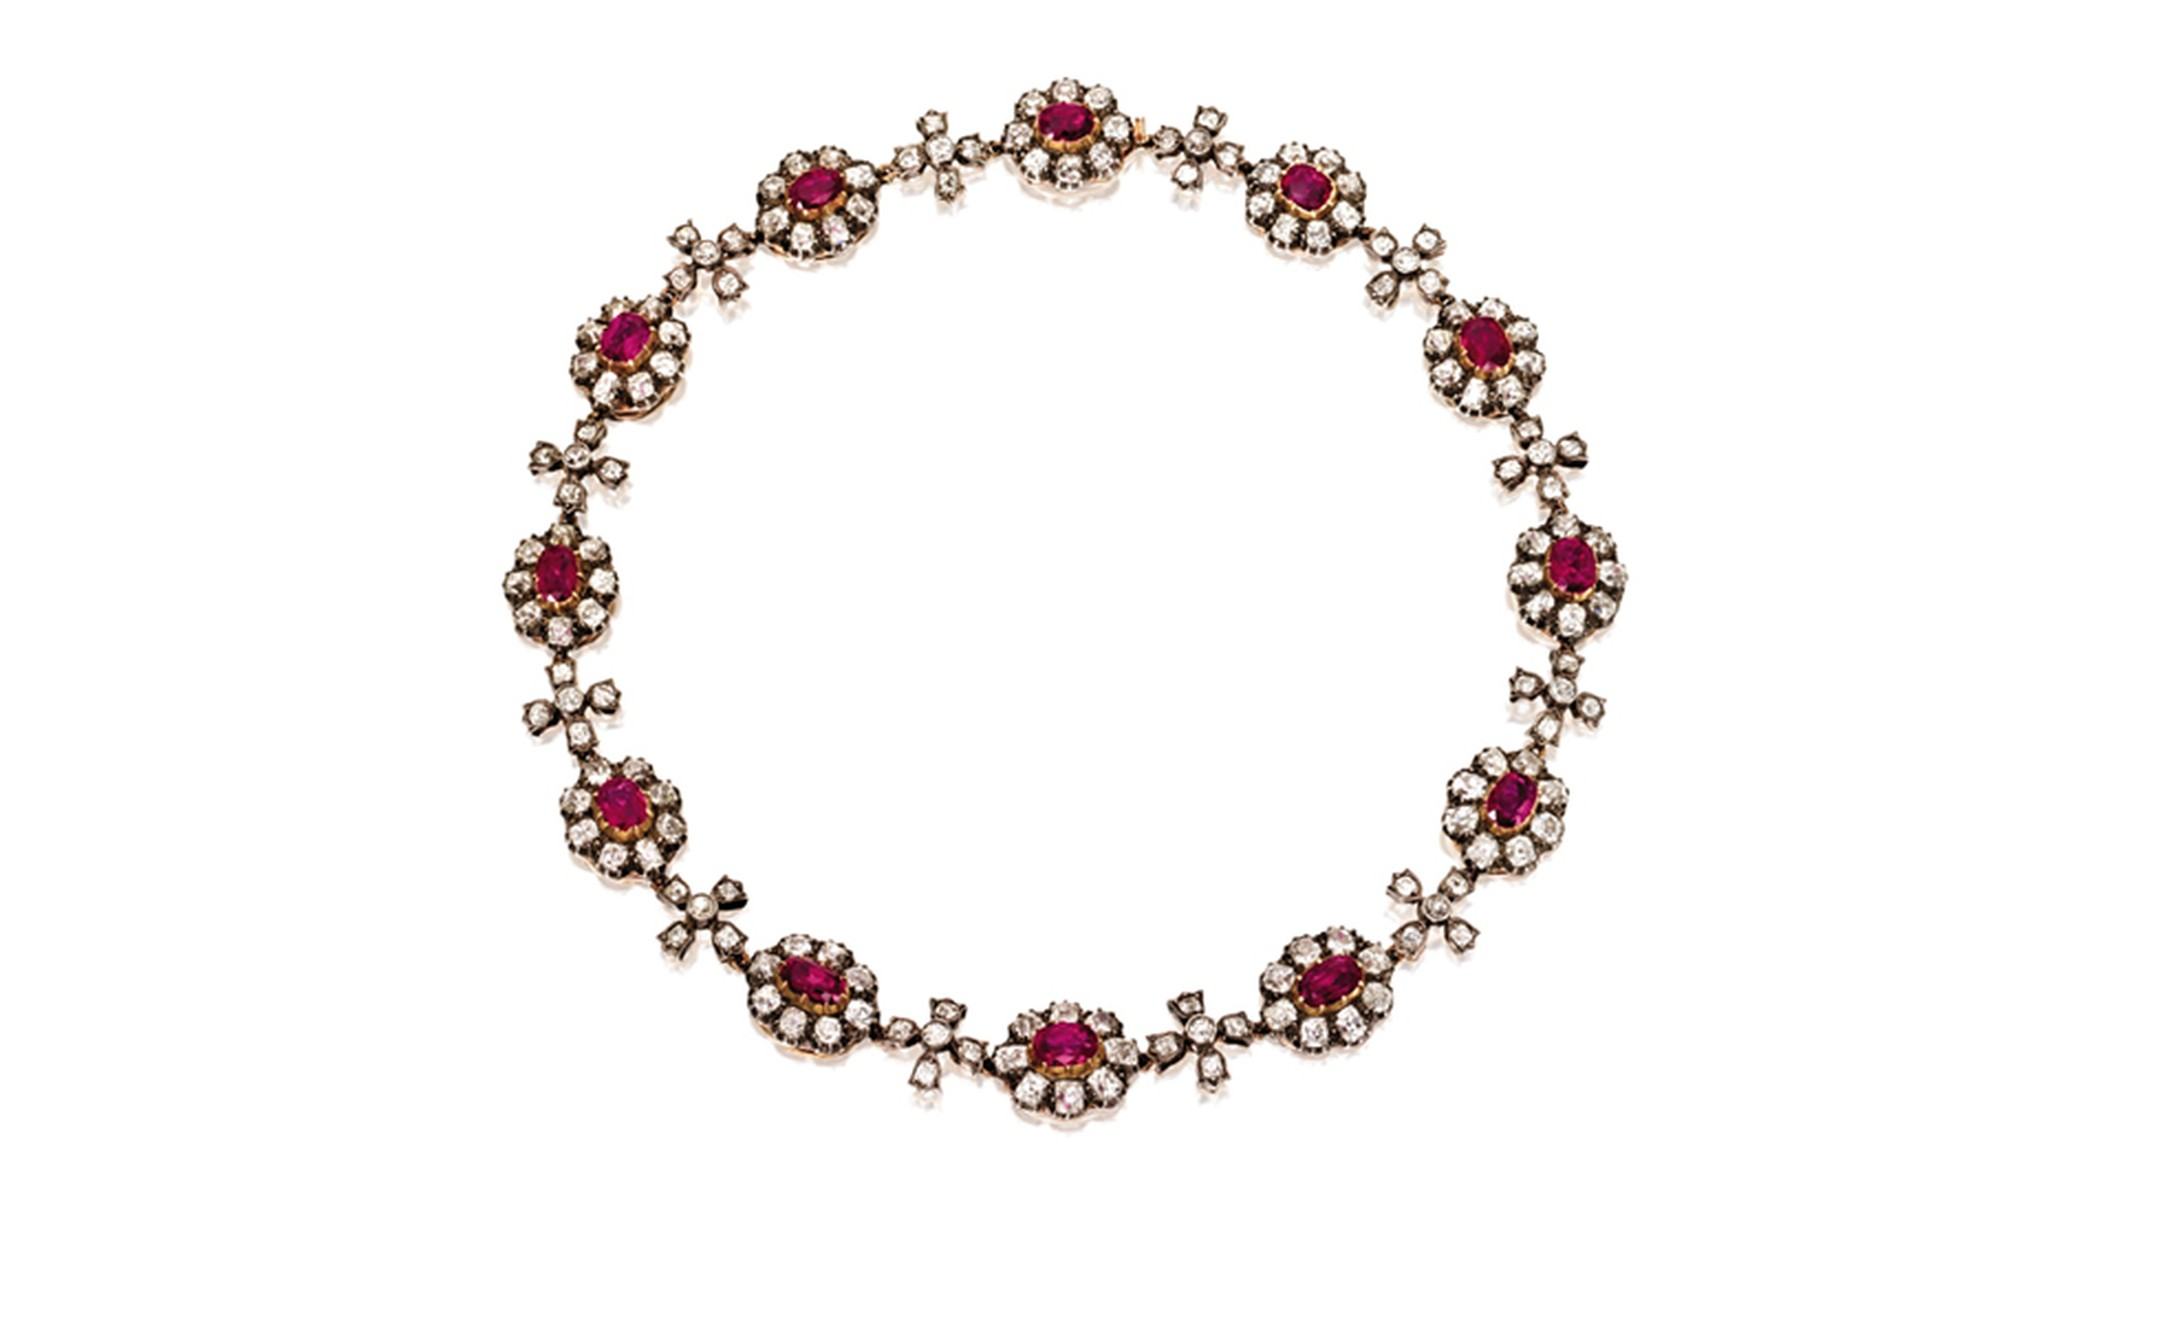 Lot 338. Gold Silver Ruby and Diamond Necklace. Est. $80/129,000. SOLD FOR $152,500.